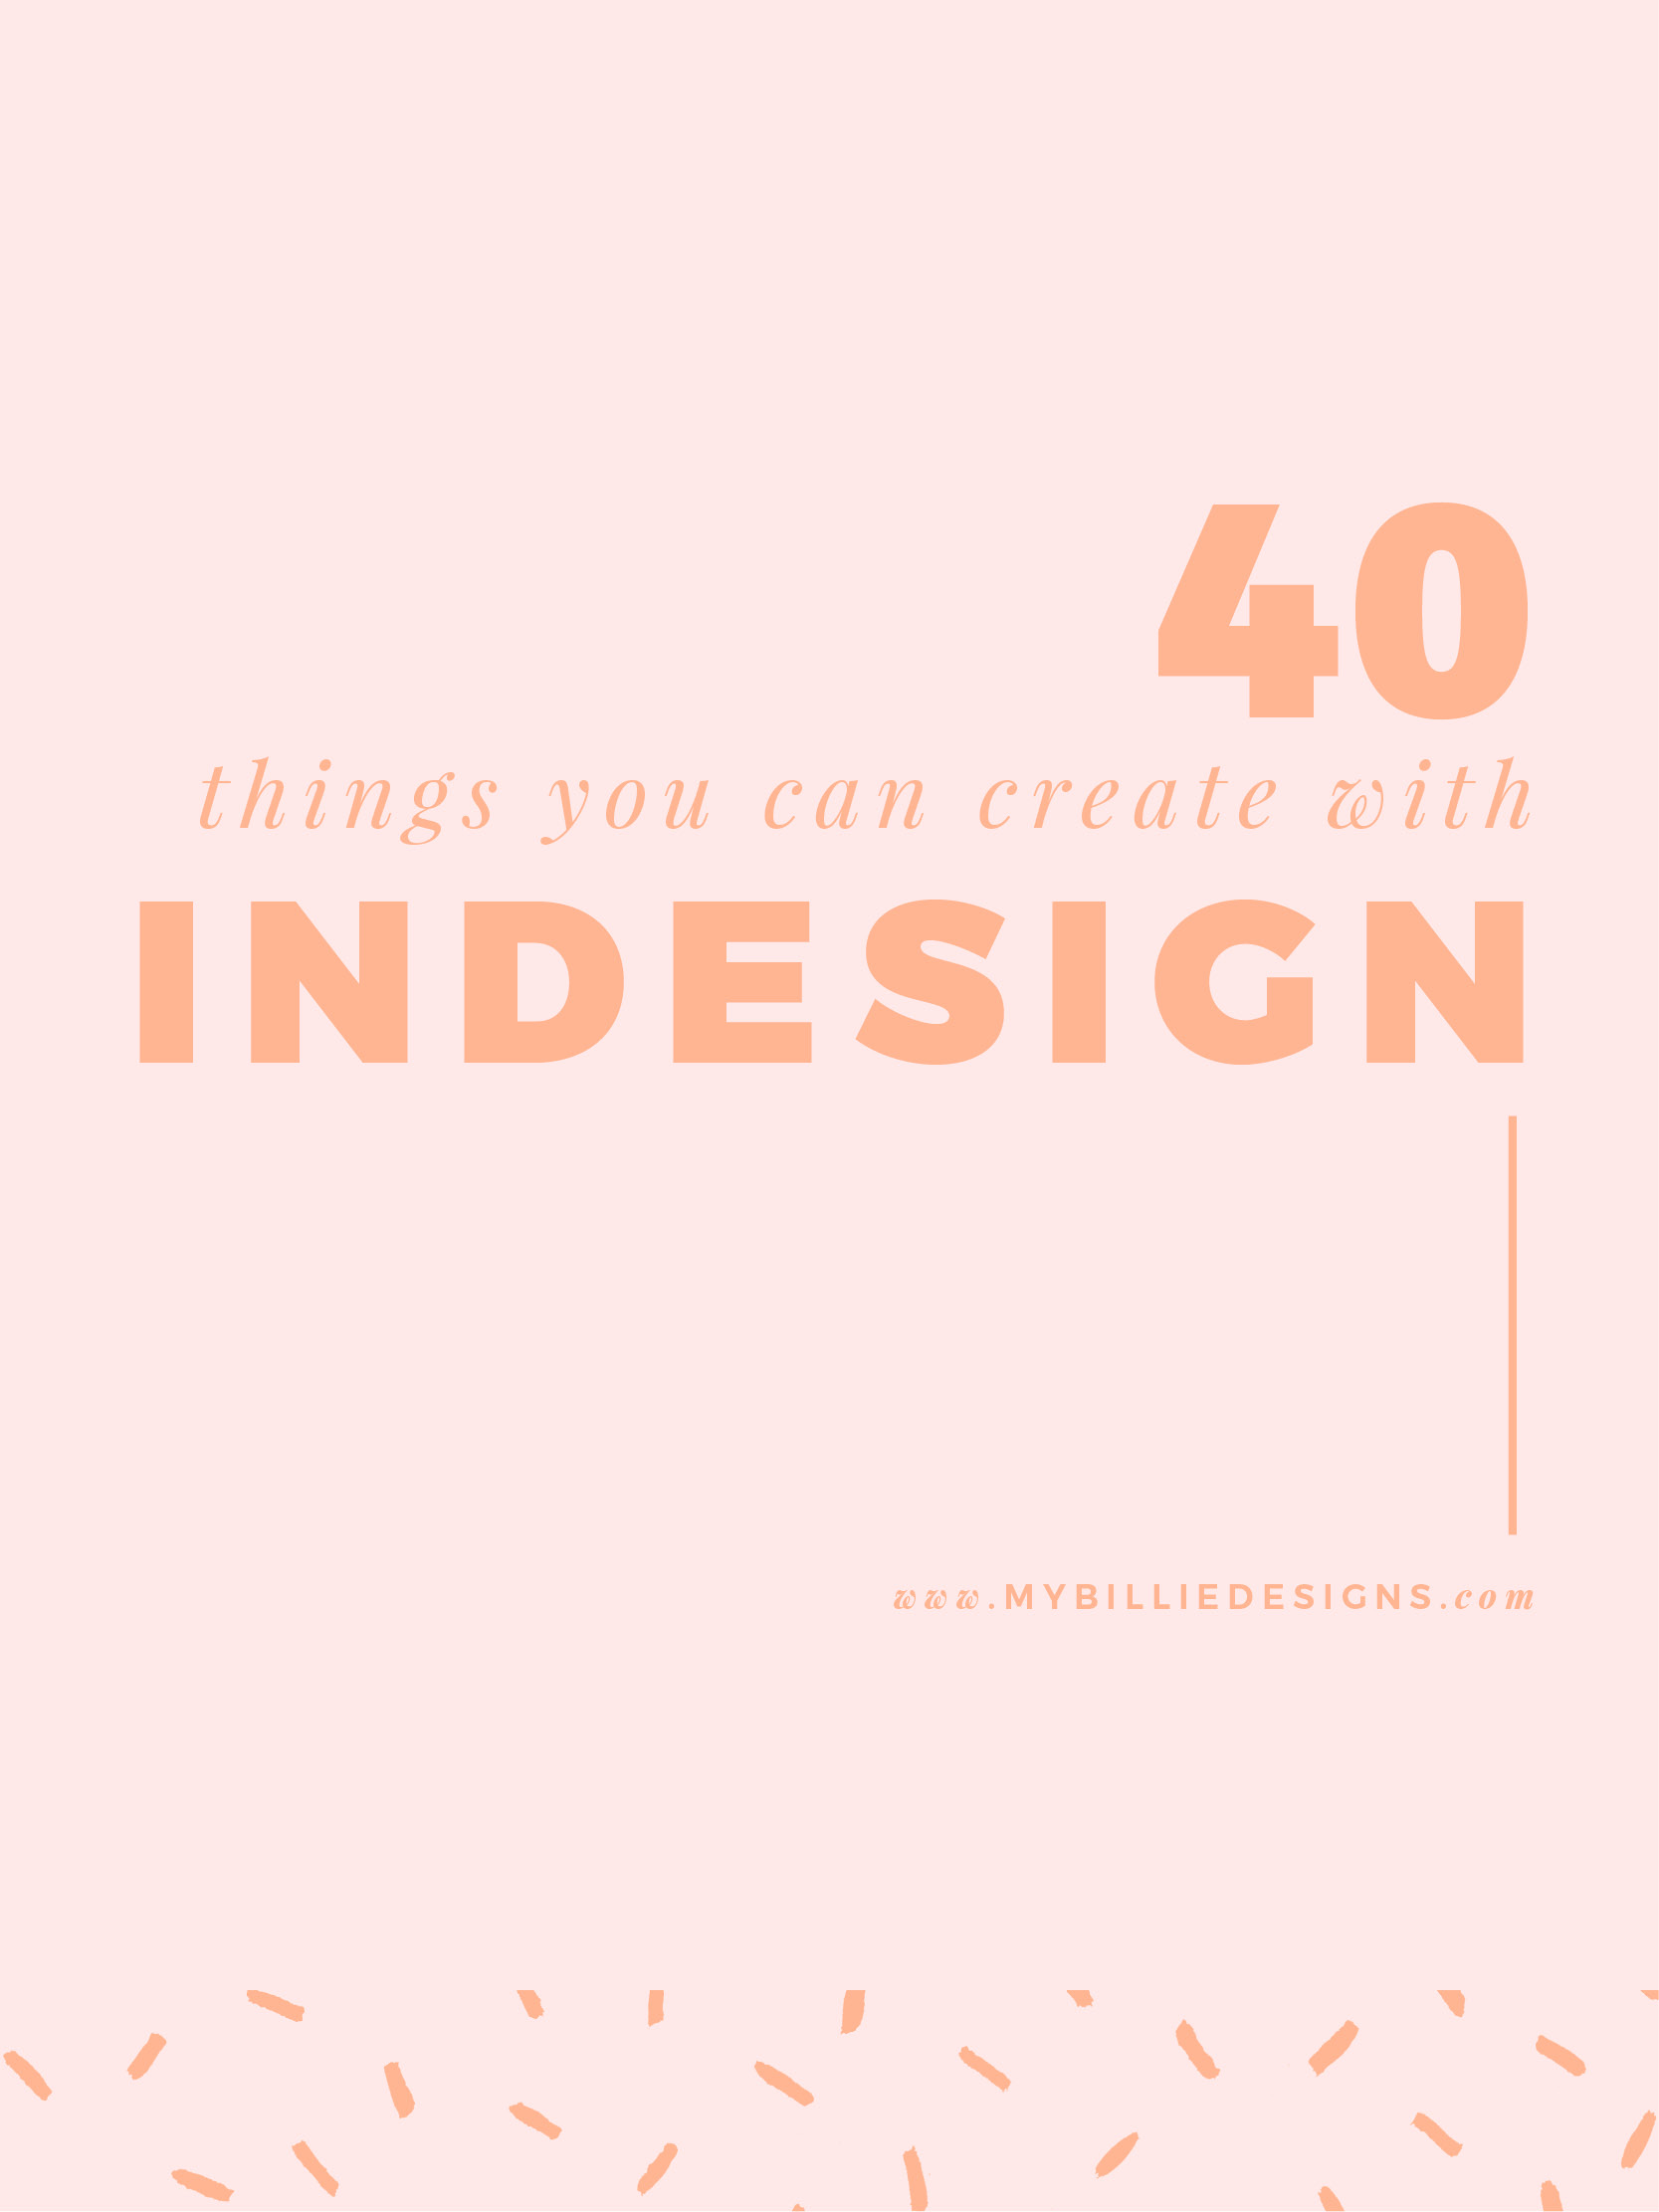 Forty things you can create for your business with Adobe InDesign